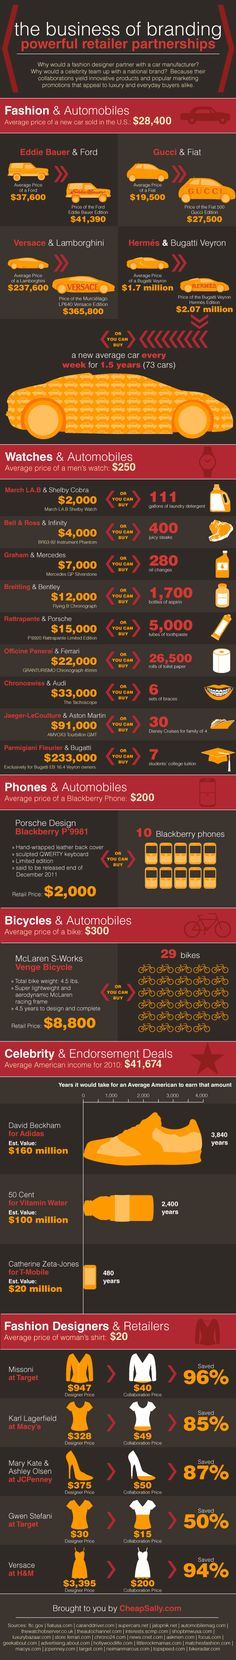 What would you do with 26,000 rolls of toilet paper? Would you rather buy 1 luxury car, or a new car every week for a year and a half? Check it out! #infographic